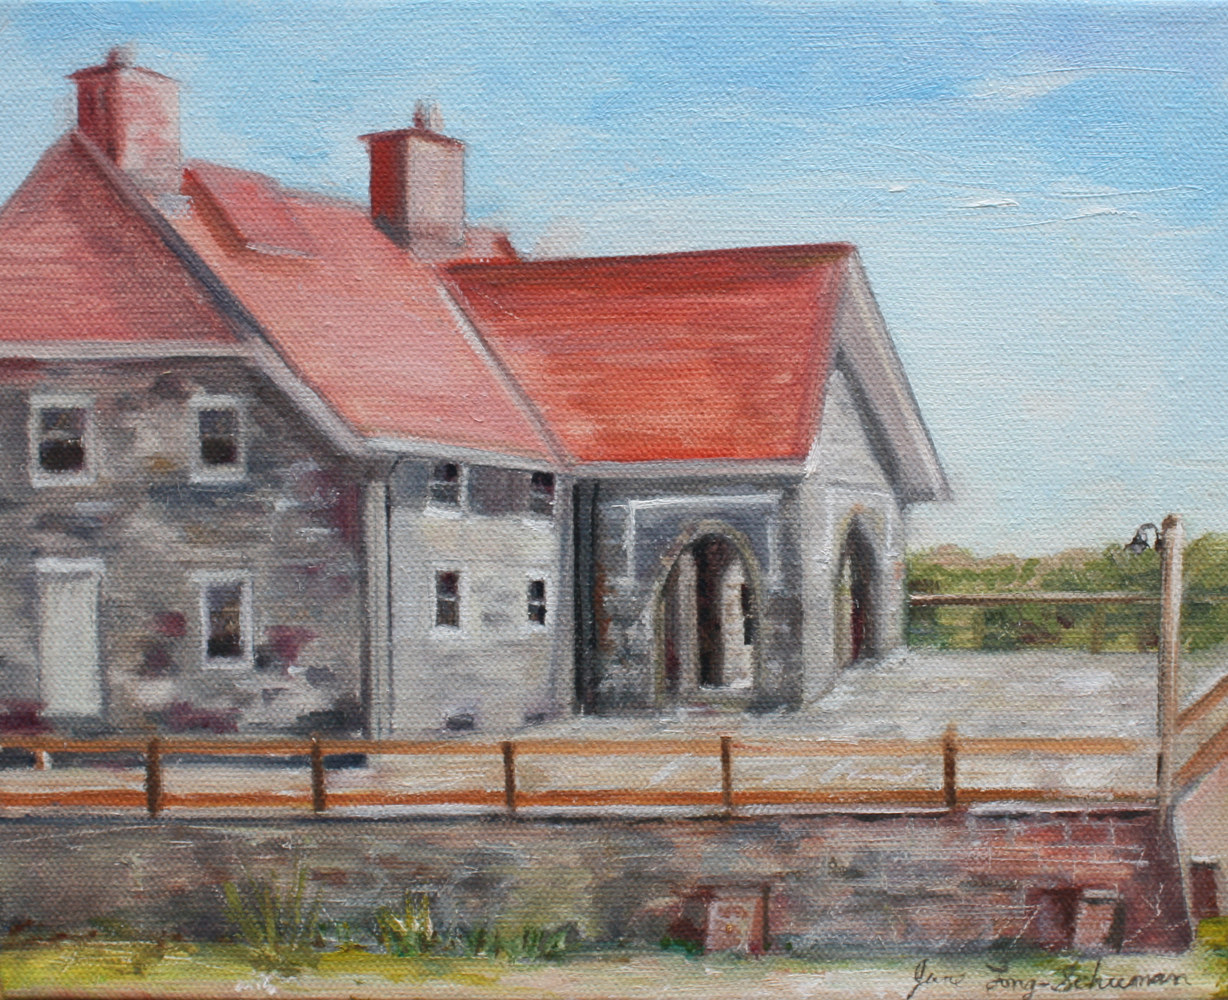 Oil painting Keepers Quarters by June Long-schuman